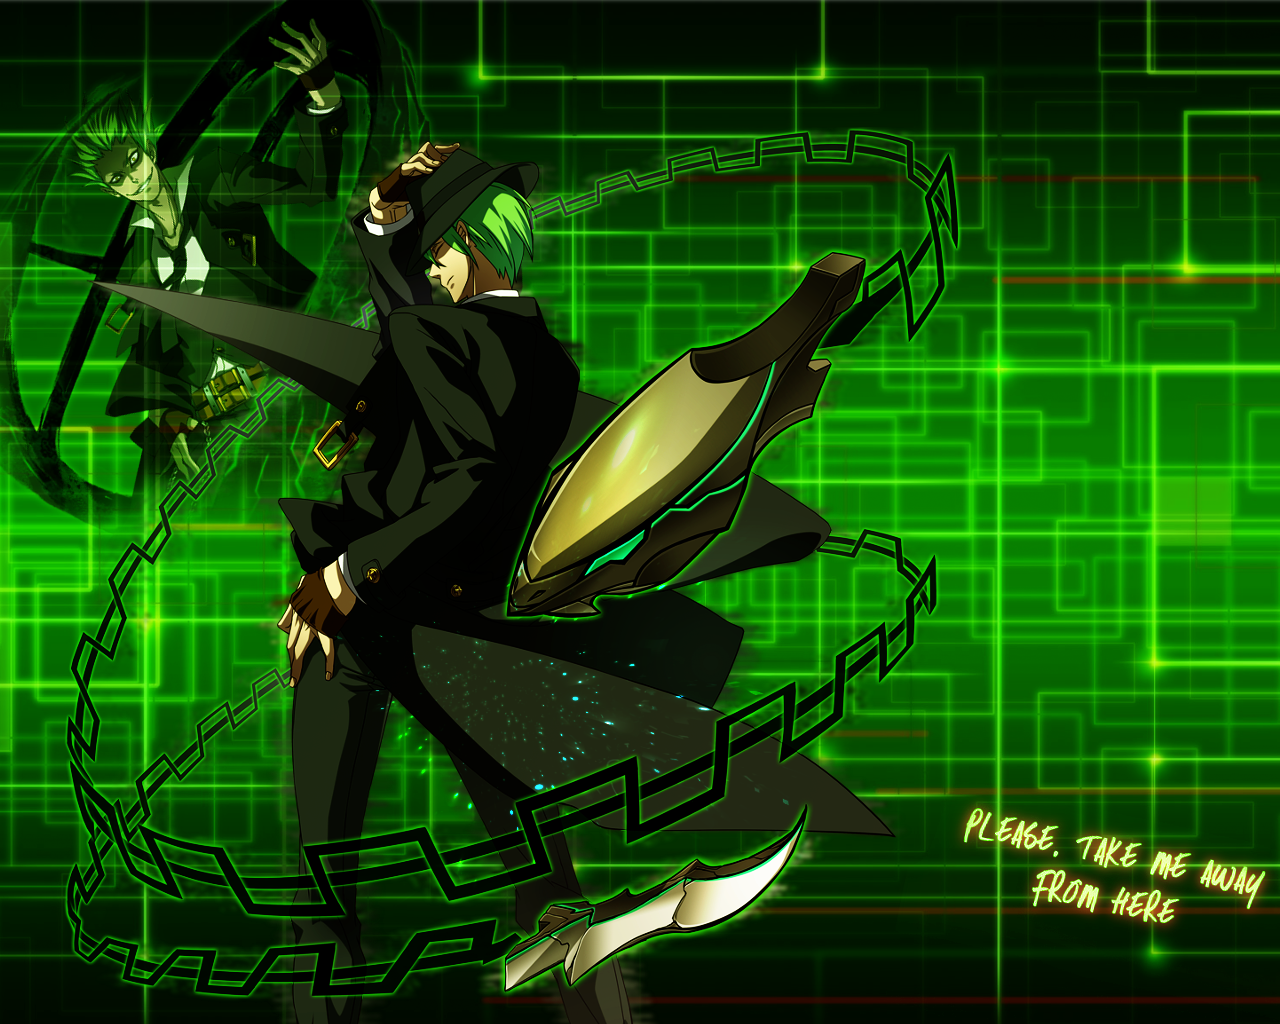 Best 49 Hazama Wallpaper On Hipwallpaper Hazama Wallpaper